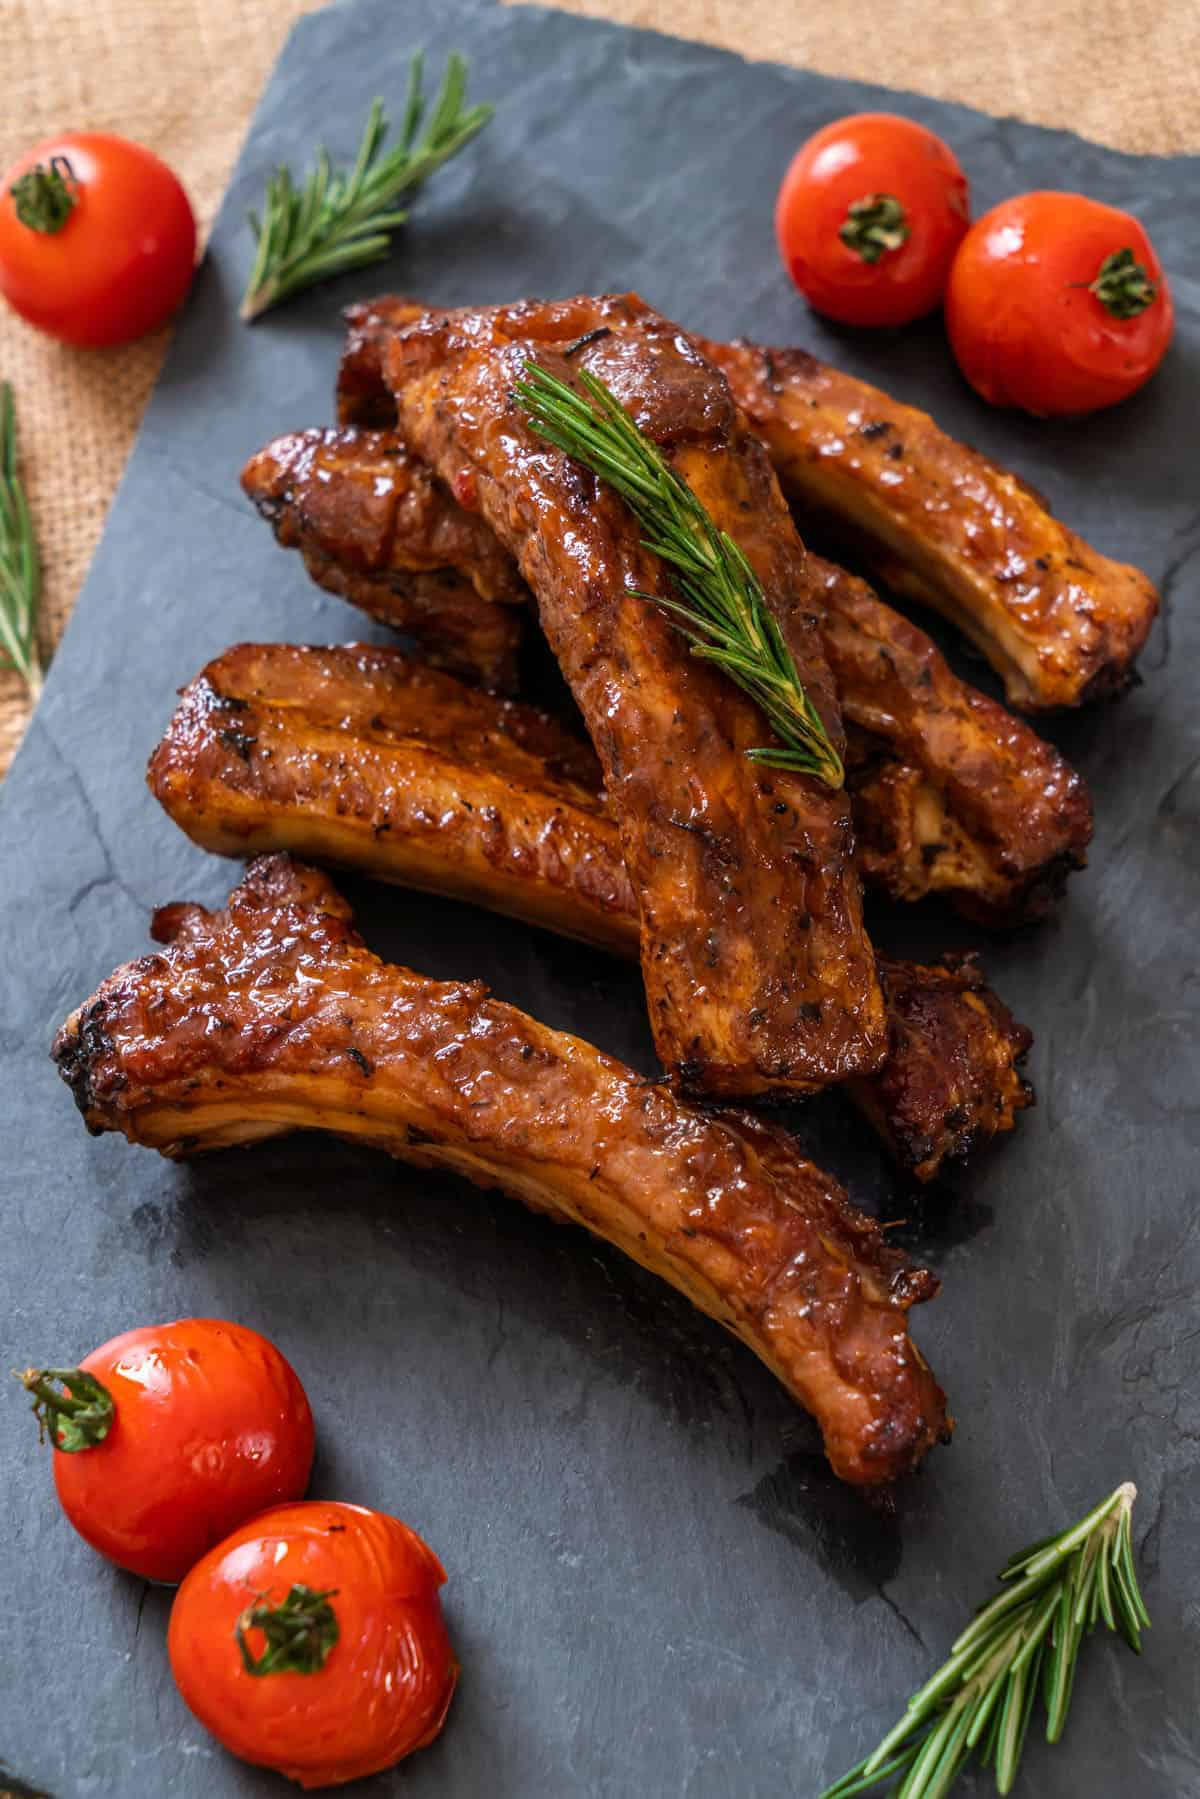 grilled barbecue pork ribs with rosemary and tomatoes